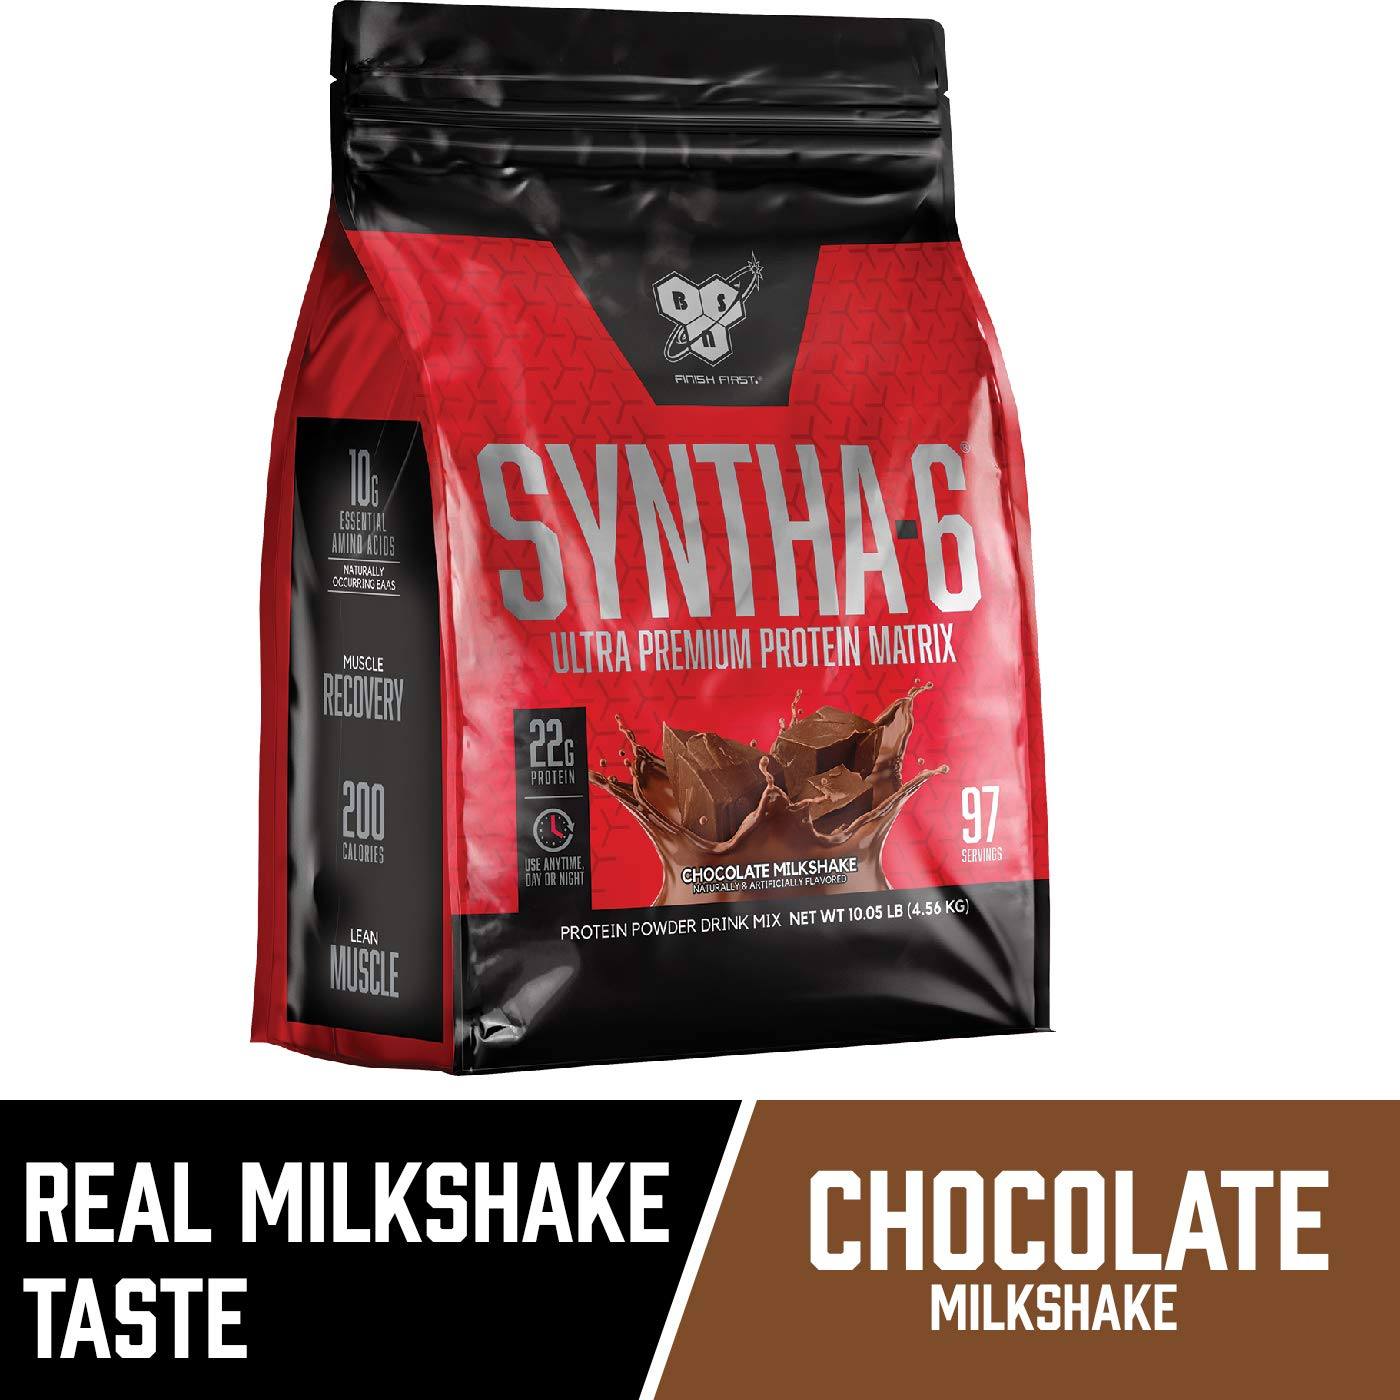 BSN SYNTHA-6 Whey Protein Powder, Micellar Casein, Milk Protein Isolate Powder, Chocolate Milkshake, 97 Servings (Package May Vary) by BSN (Image #2)